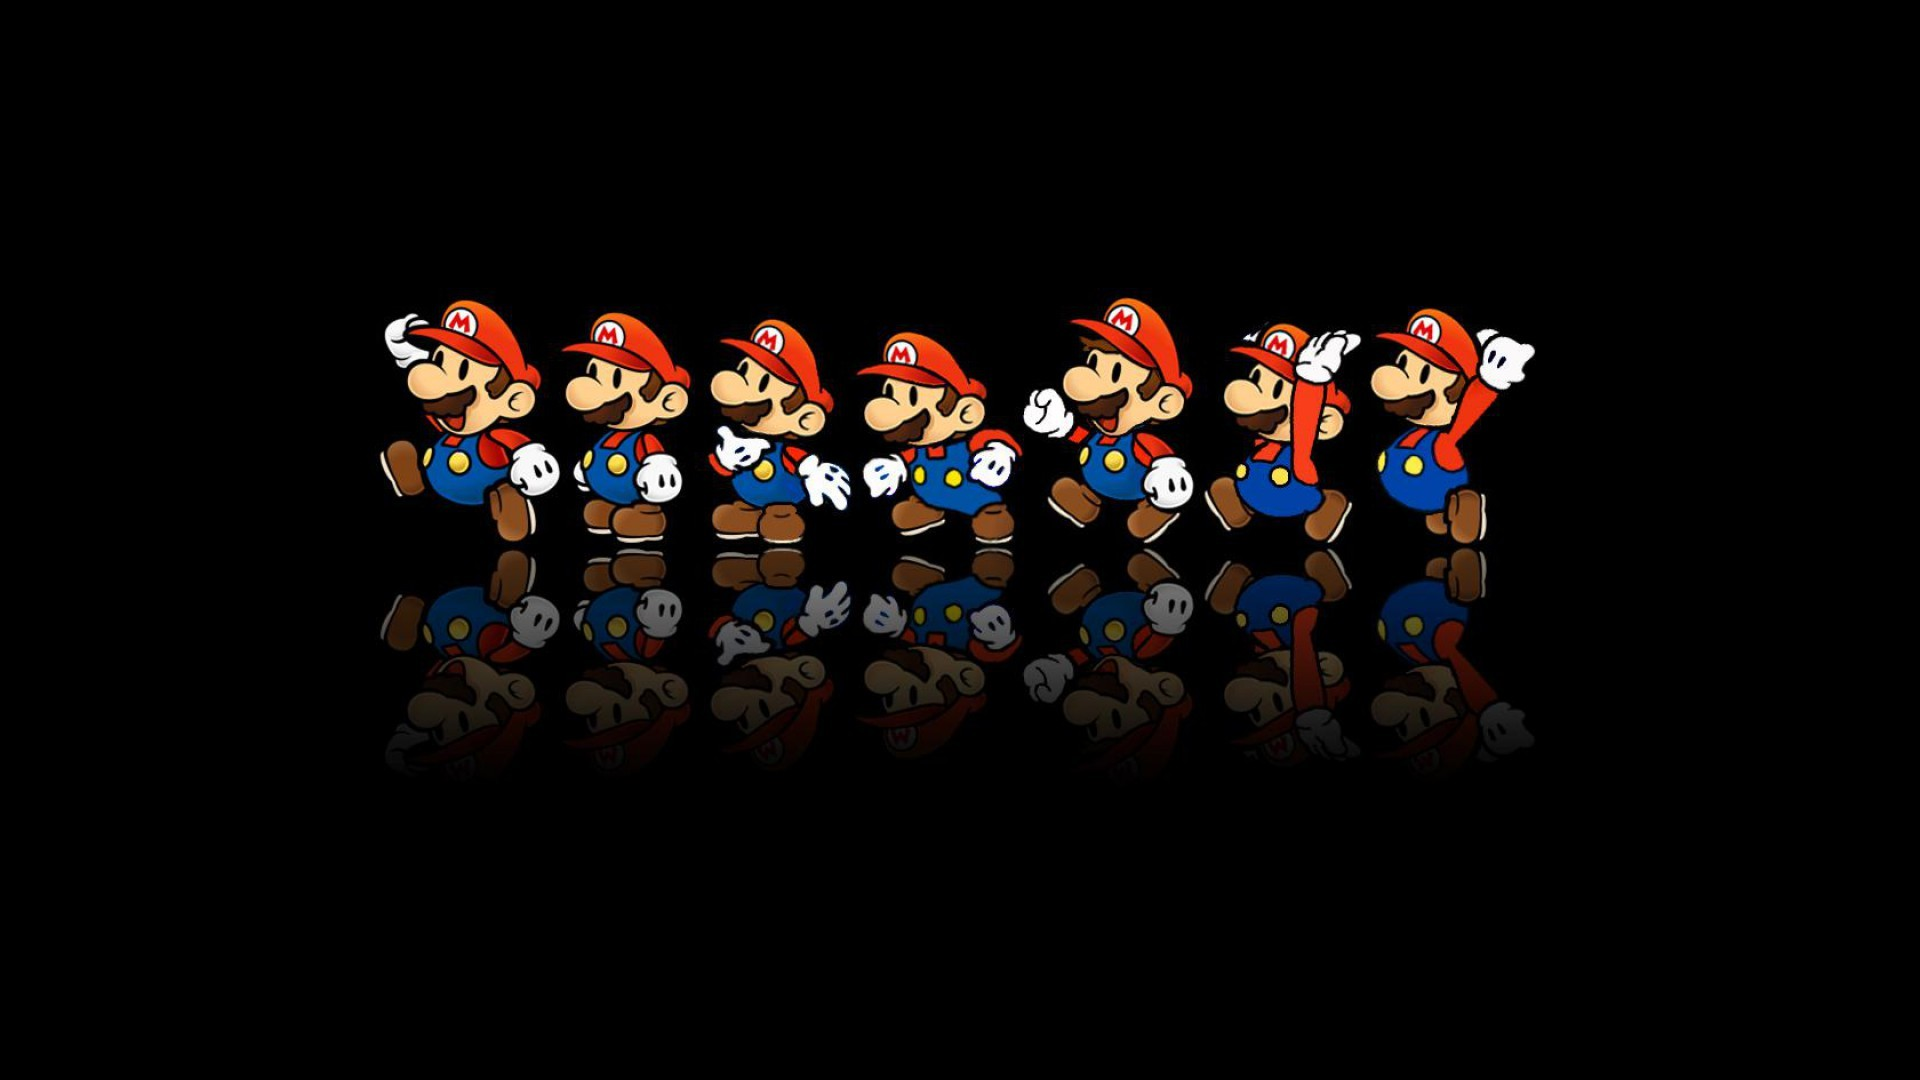 1920x1080 Games Wallpapers Mario Other Video Games Mario Wallpaper